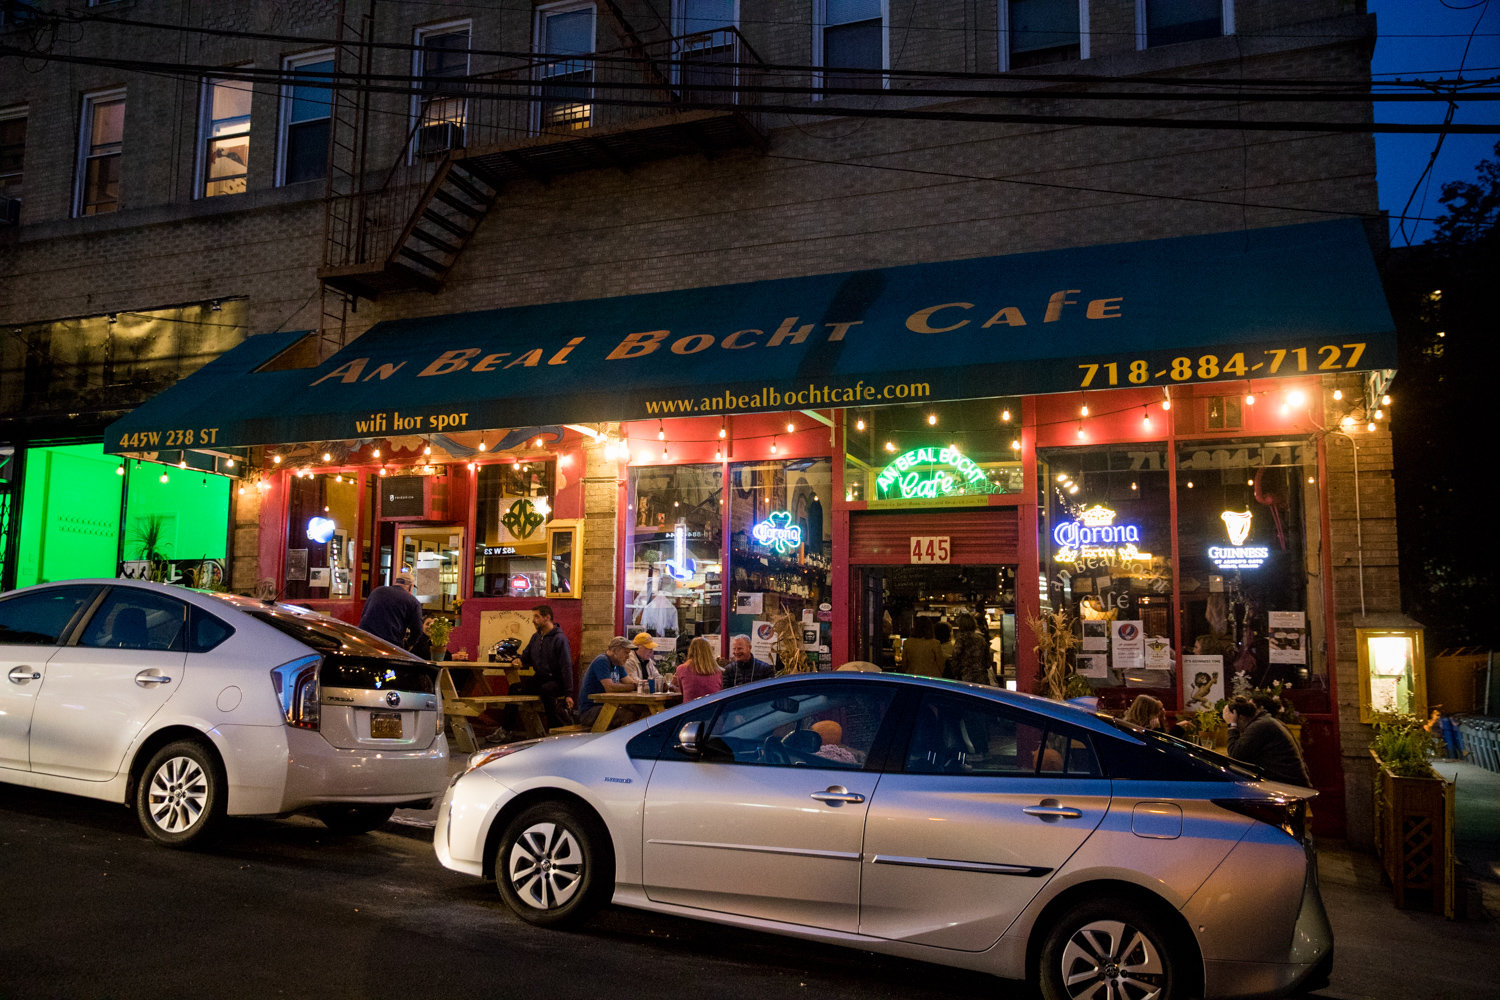 If West 238th Street is known for anything, it is An Beal Bocht Café, a pub with Irish roots catering to the neighborhood with a variety of shows like concerts and open mics.